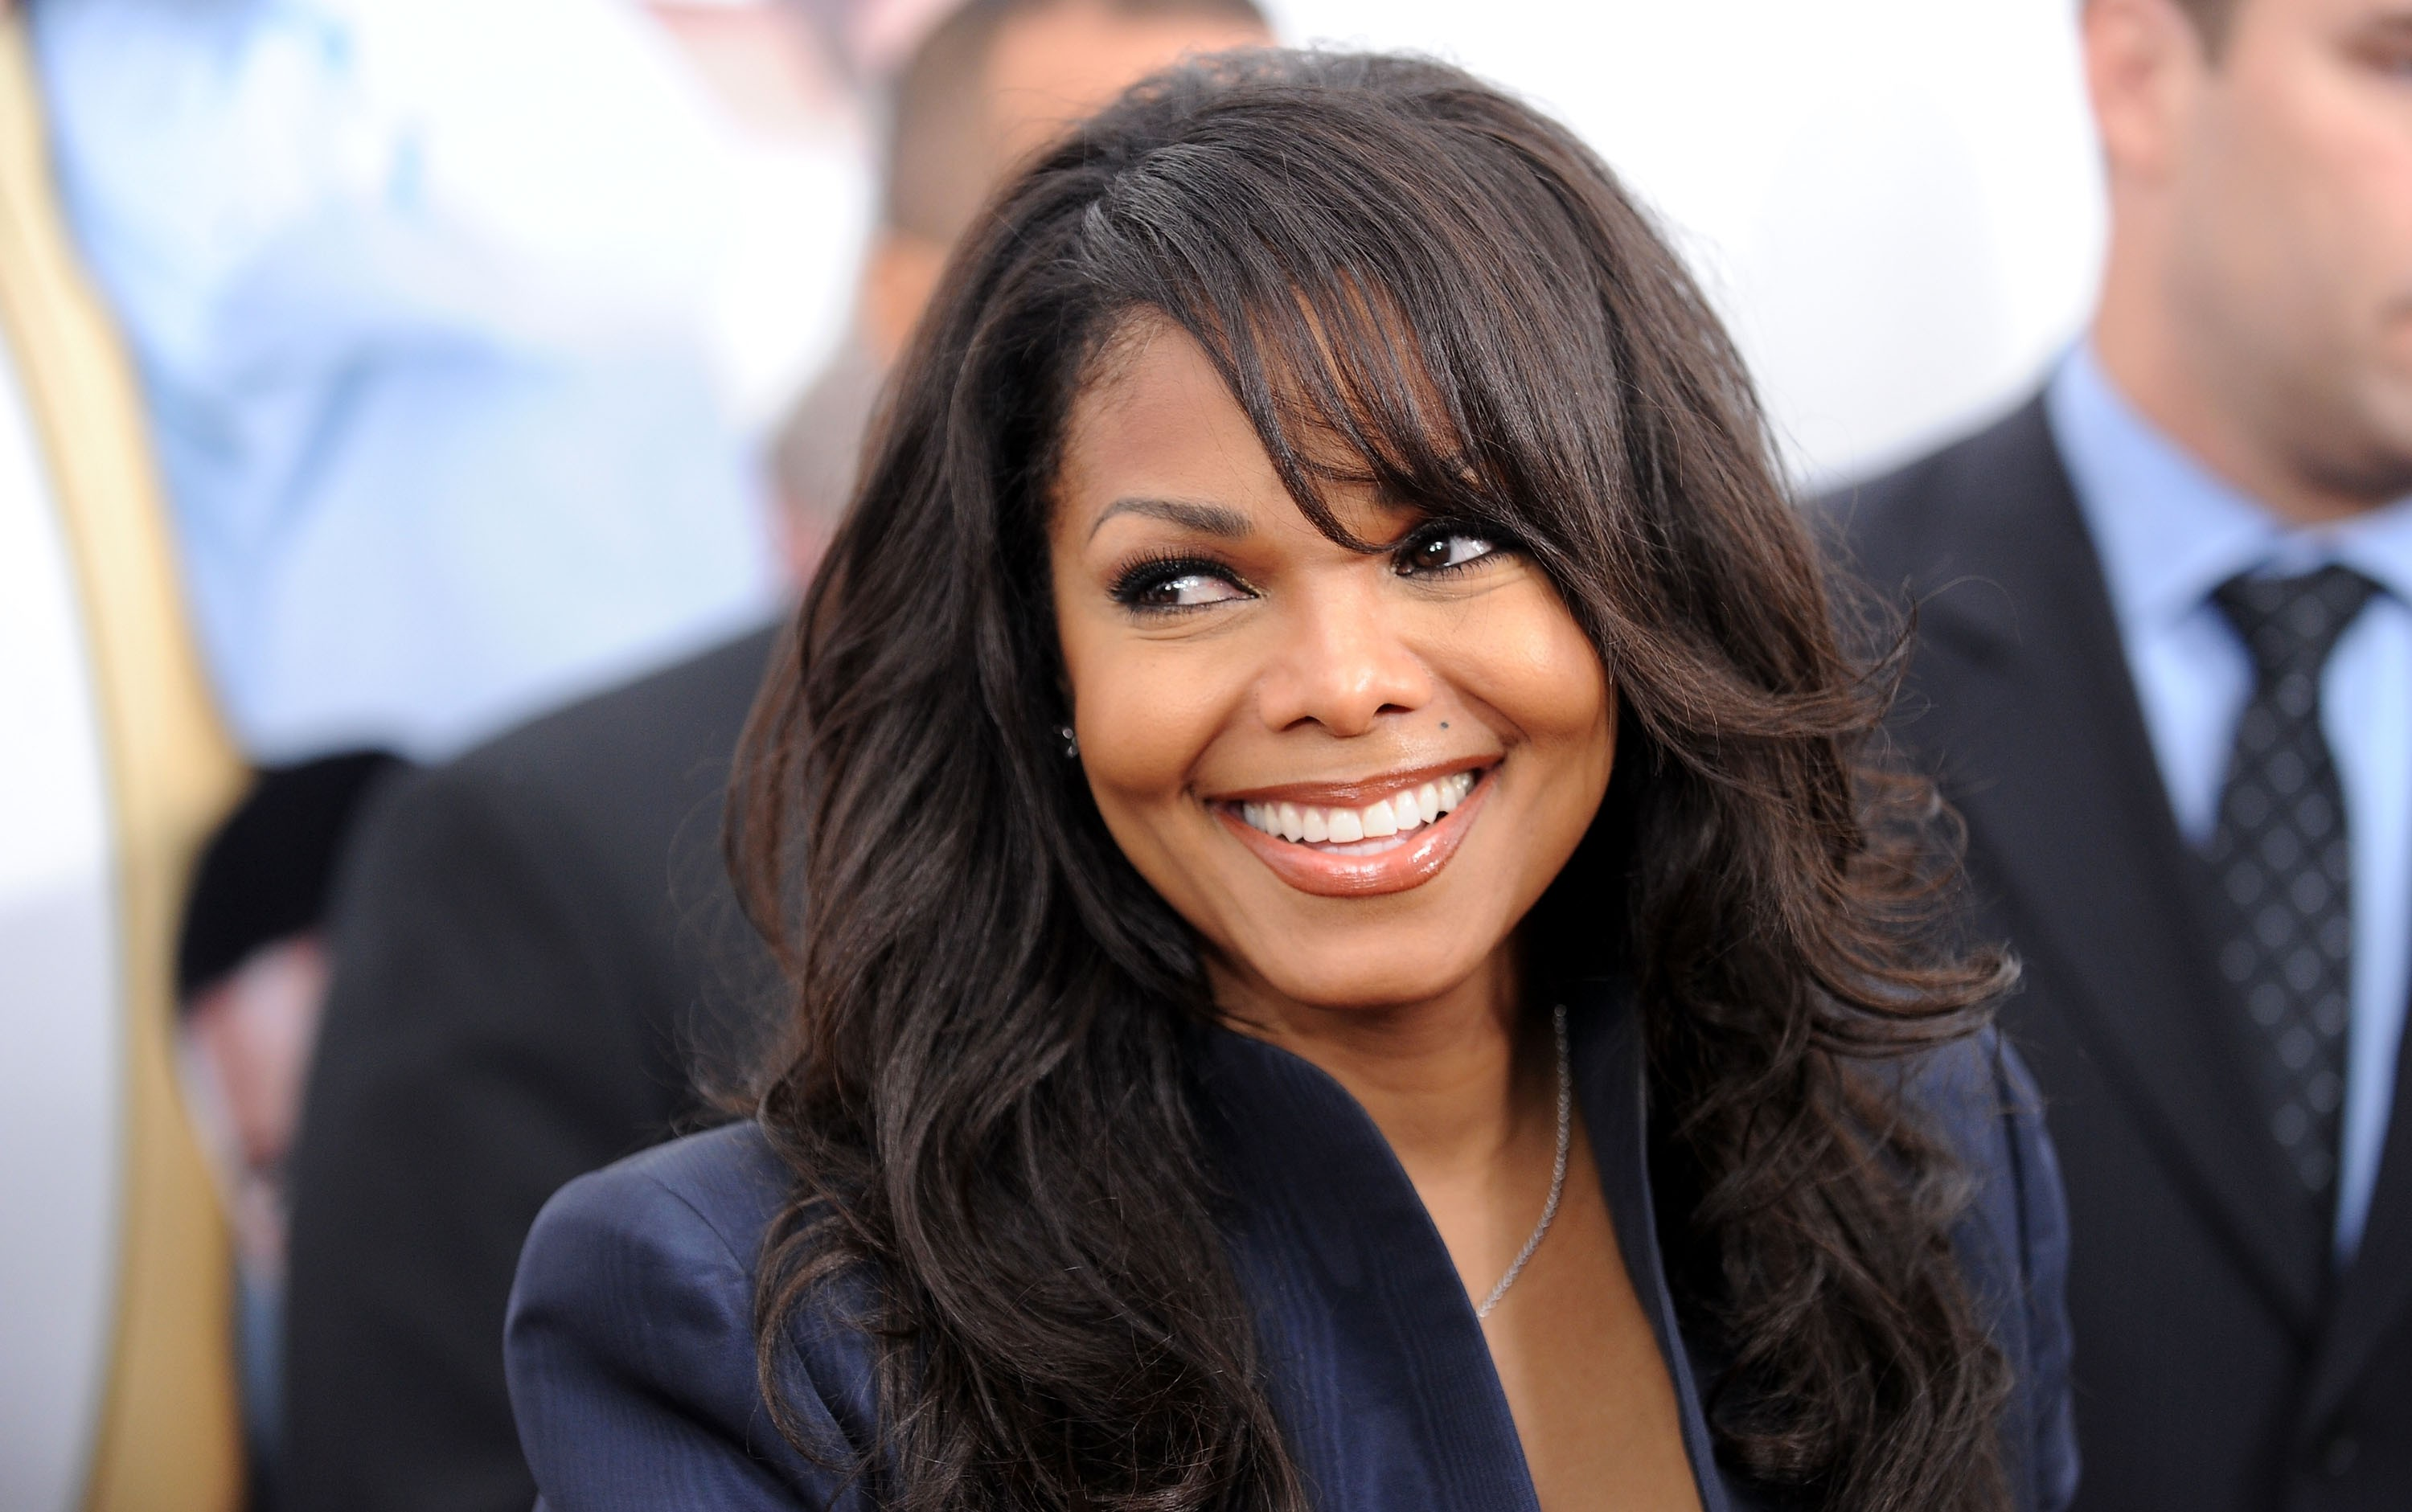 Janet Jackson is a member of one of the most famous families in entertainment history Shes the daughter of Katherine and Joe Jackson and sister to